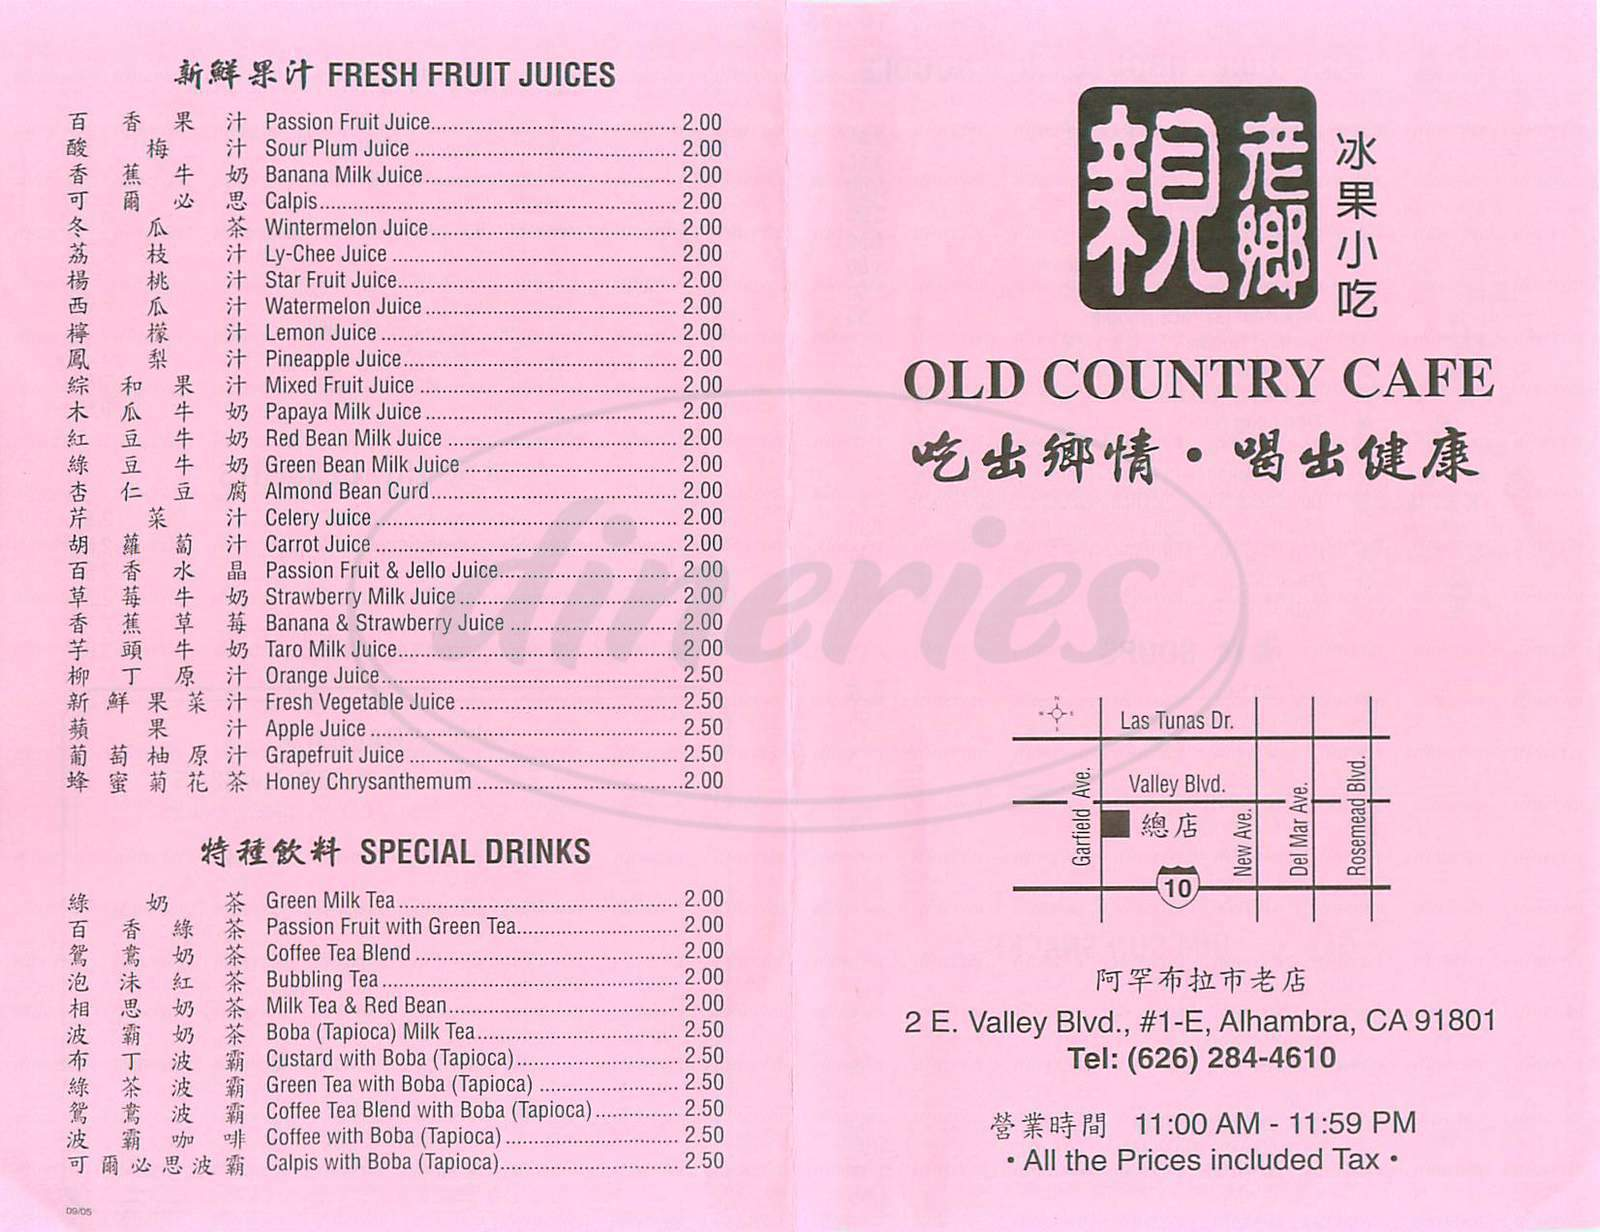 menu for Old Country Cafe